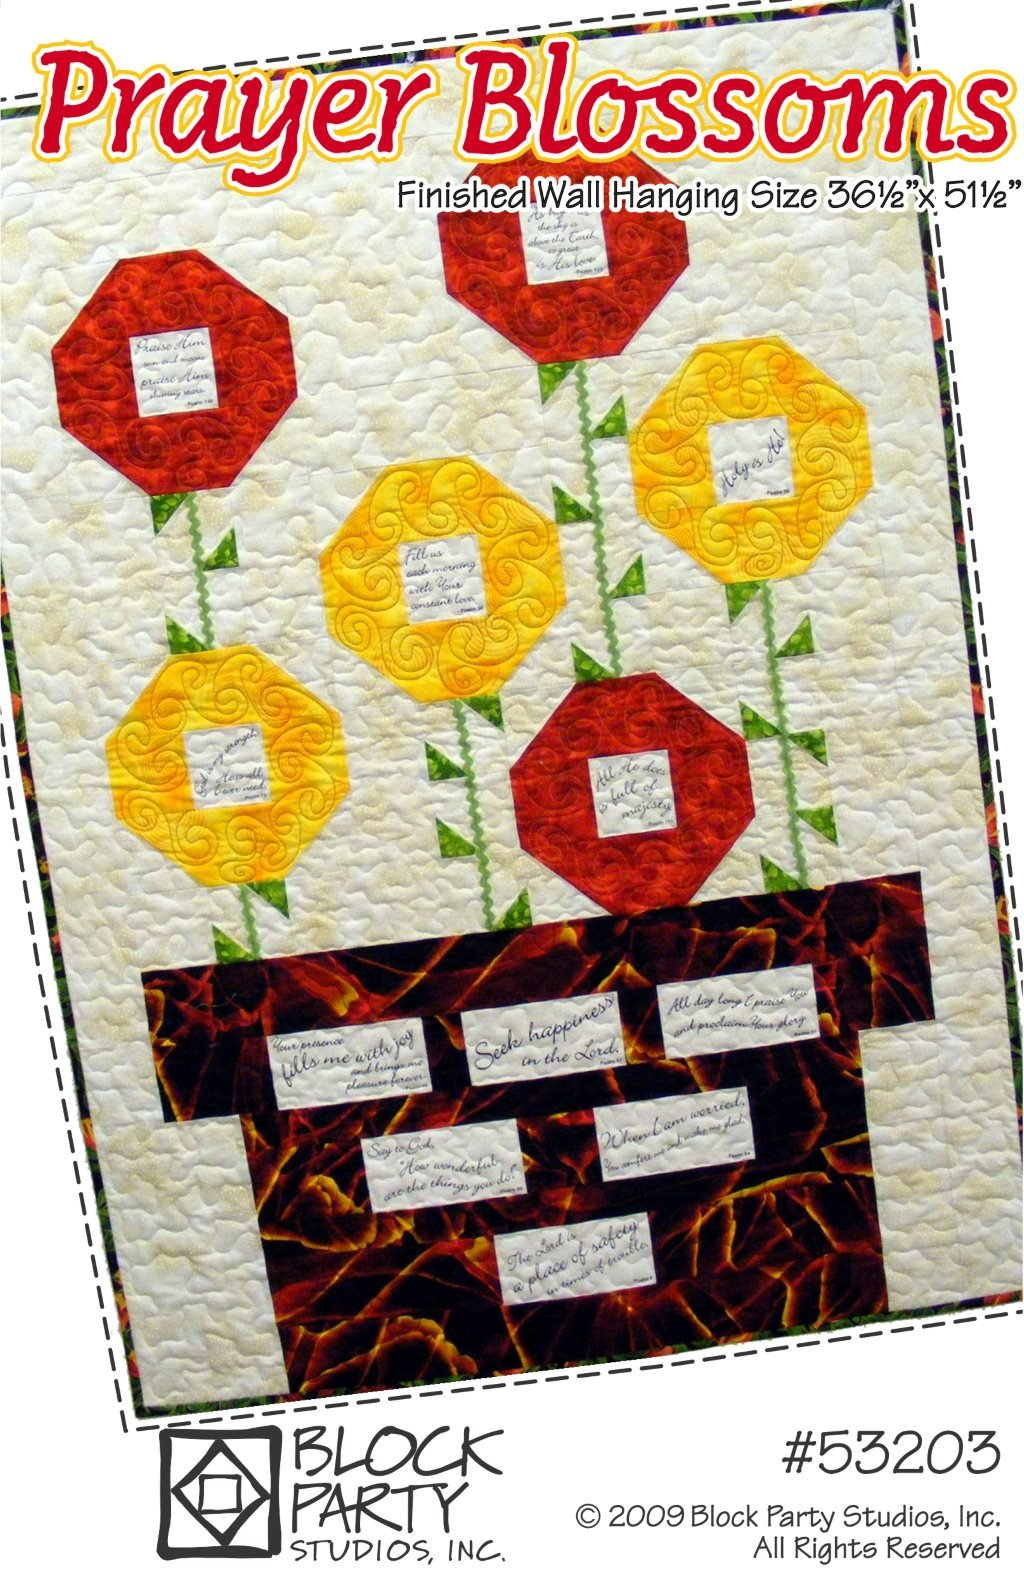 Prayer Blossoms Quilt Pattern & Comfort of Psalms Fabric Panel Kit